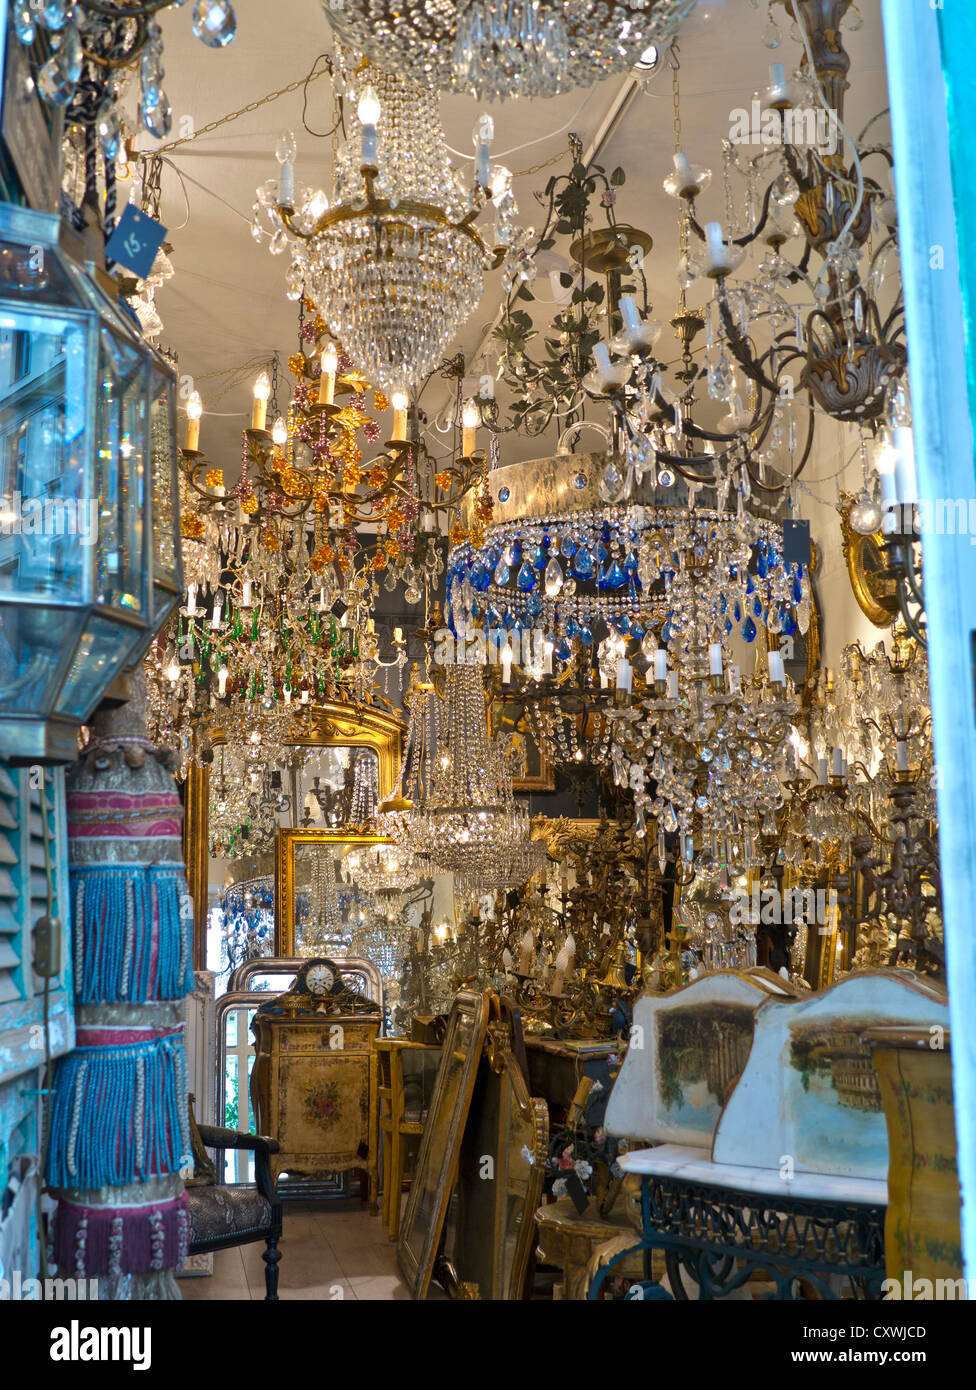 Antique Crystal In Bric A Brac Shop With Variety Of Old Crystal Stock Photo Alamy